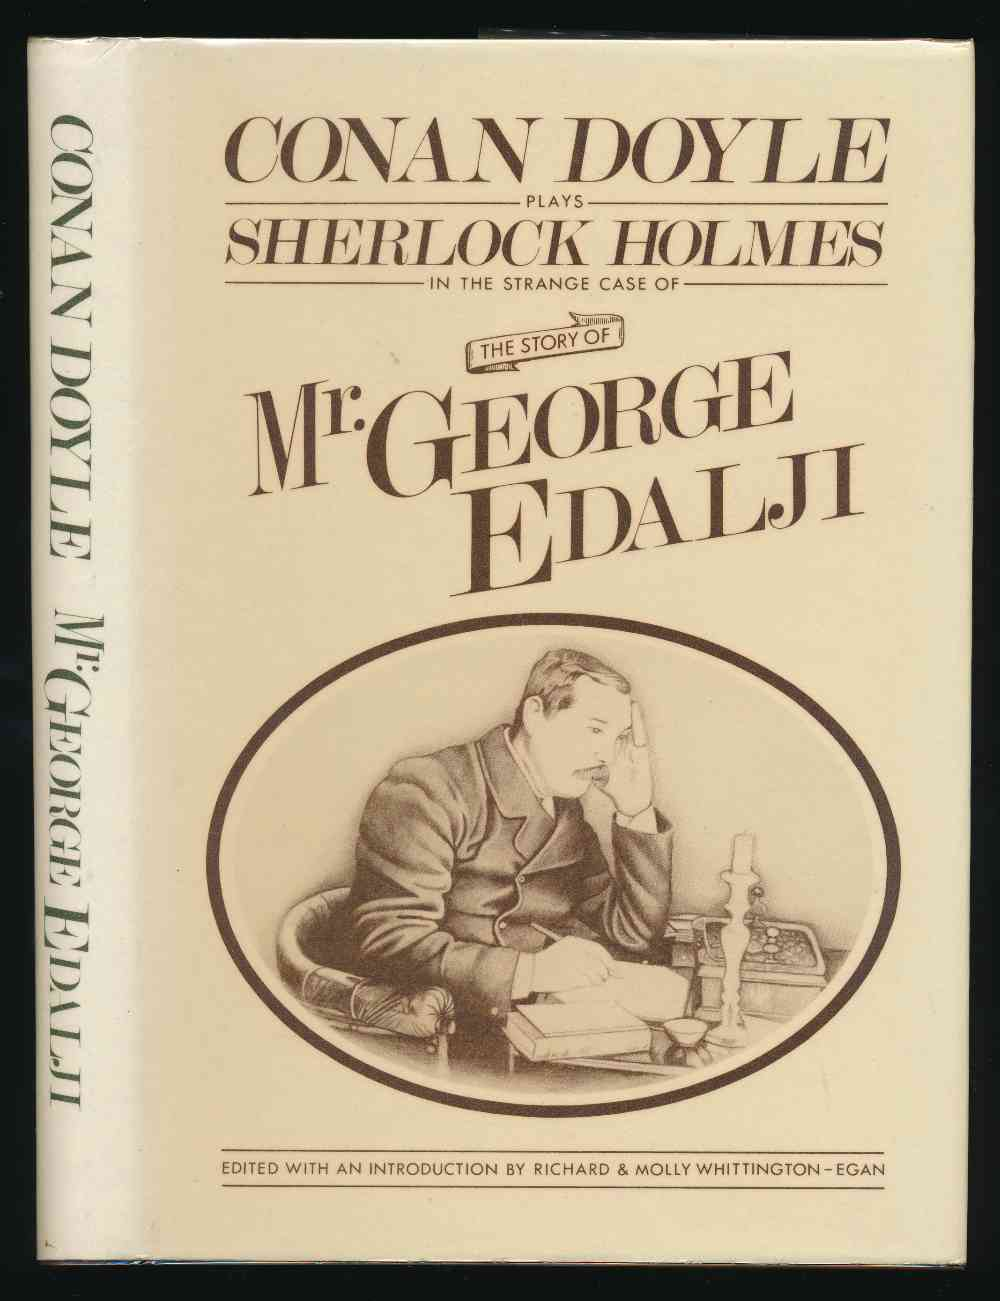 The story of Mr. George Edalji